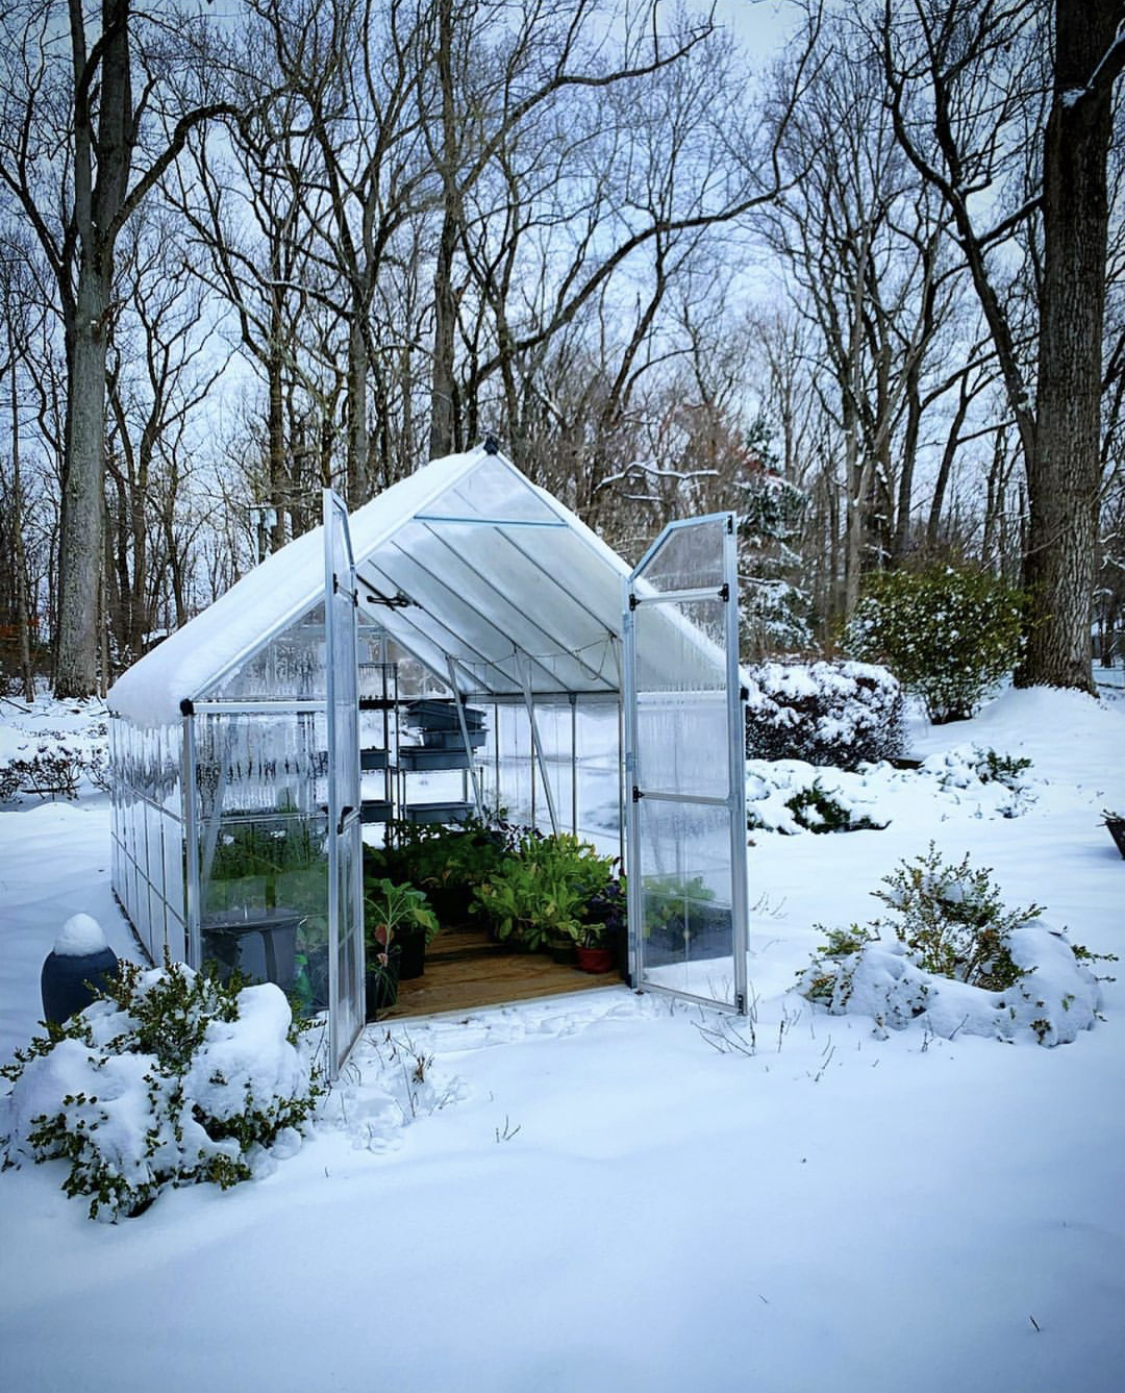 A small greenhouse in a snowy landscape